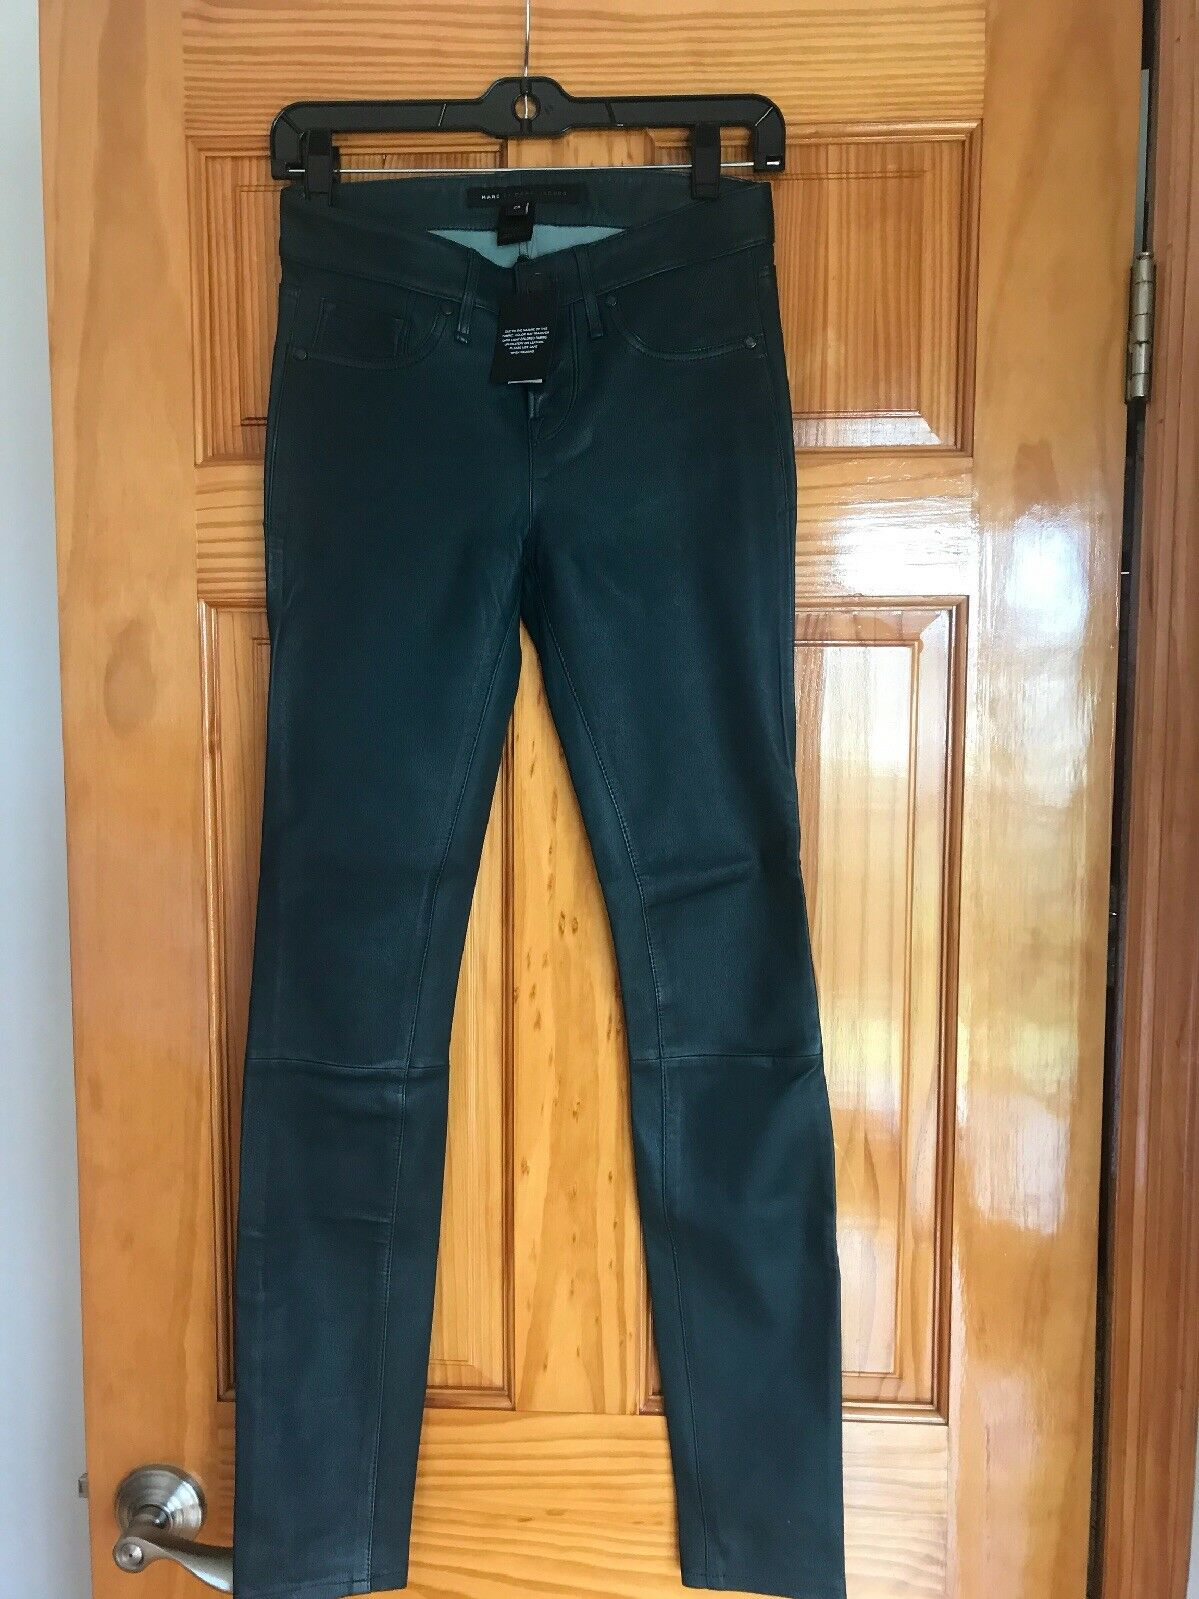 Marc by marc jacob leather pants green 25